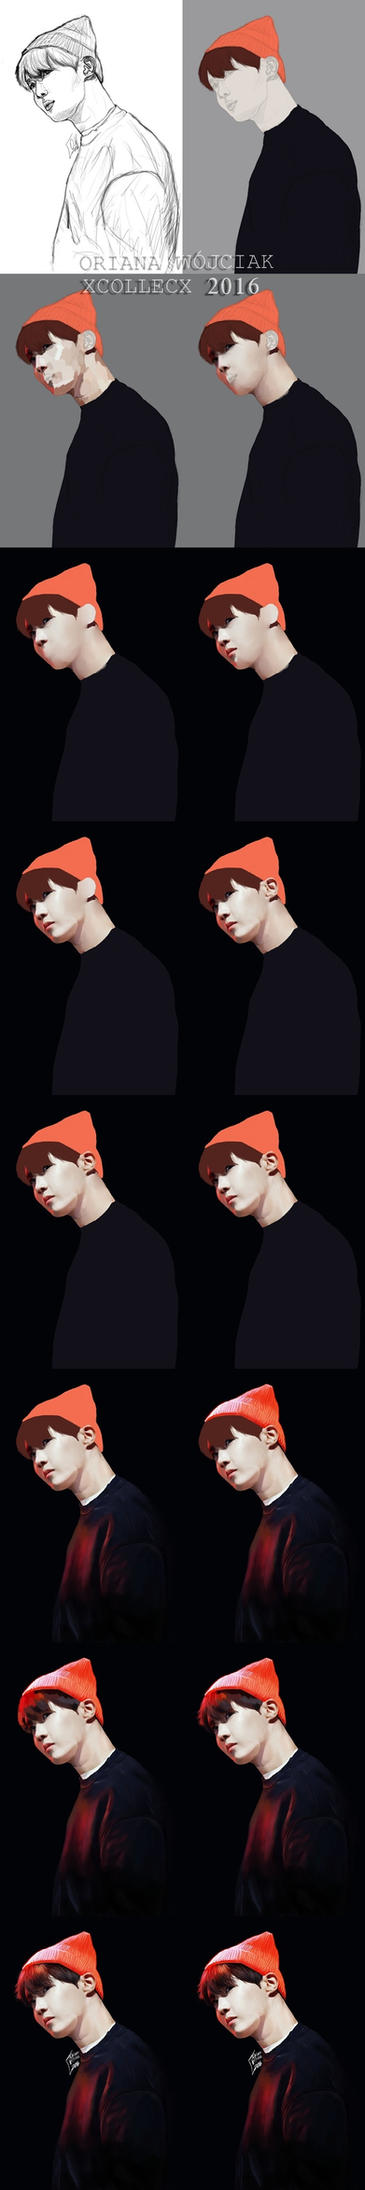 STEP BY STEP: J-Hope by xCollecx